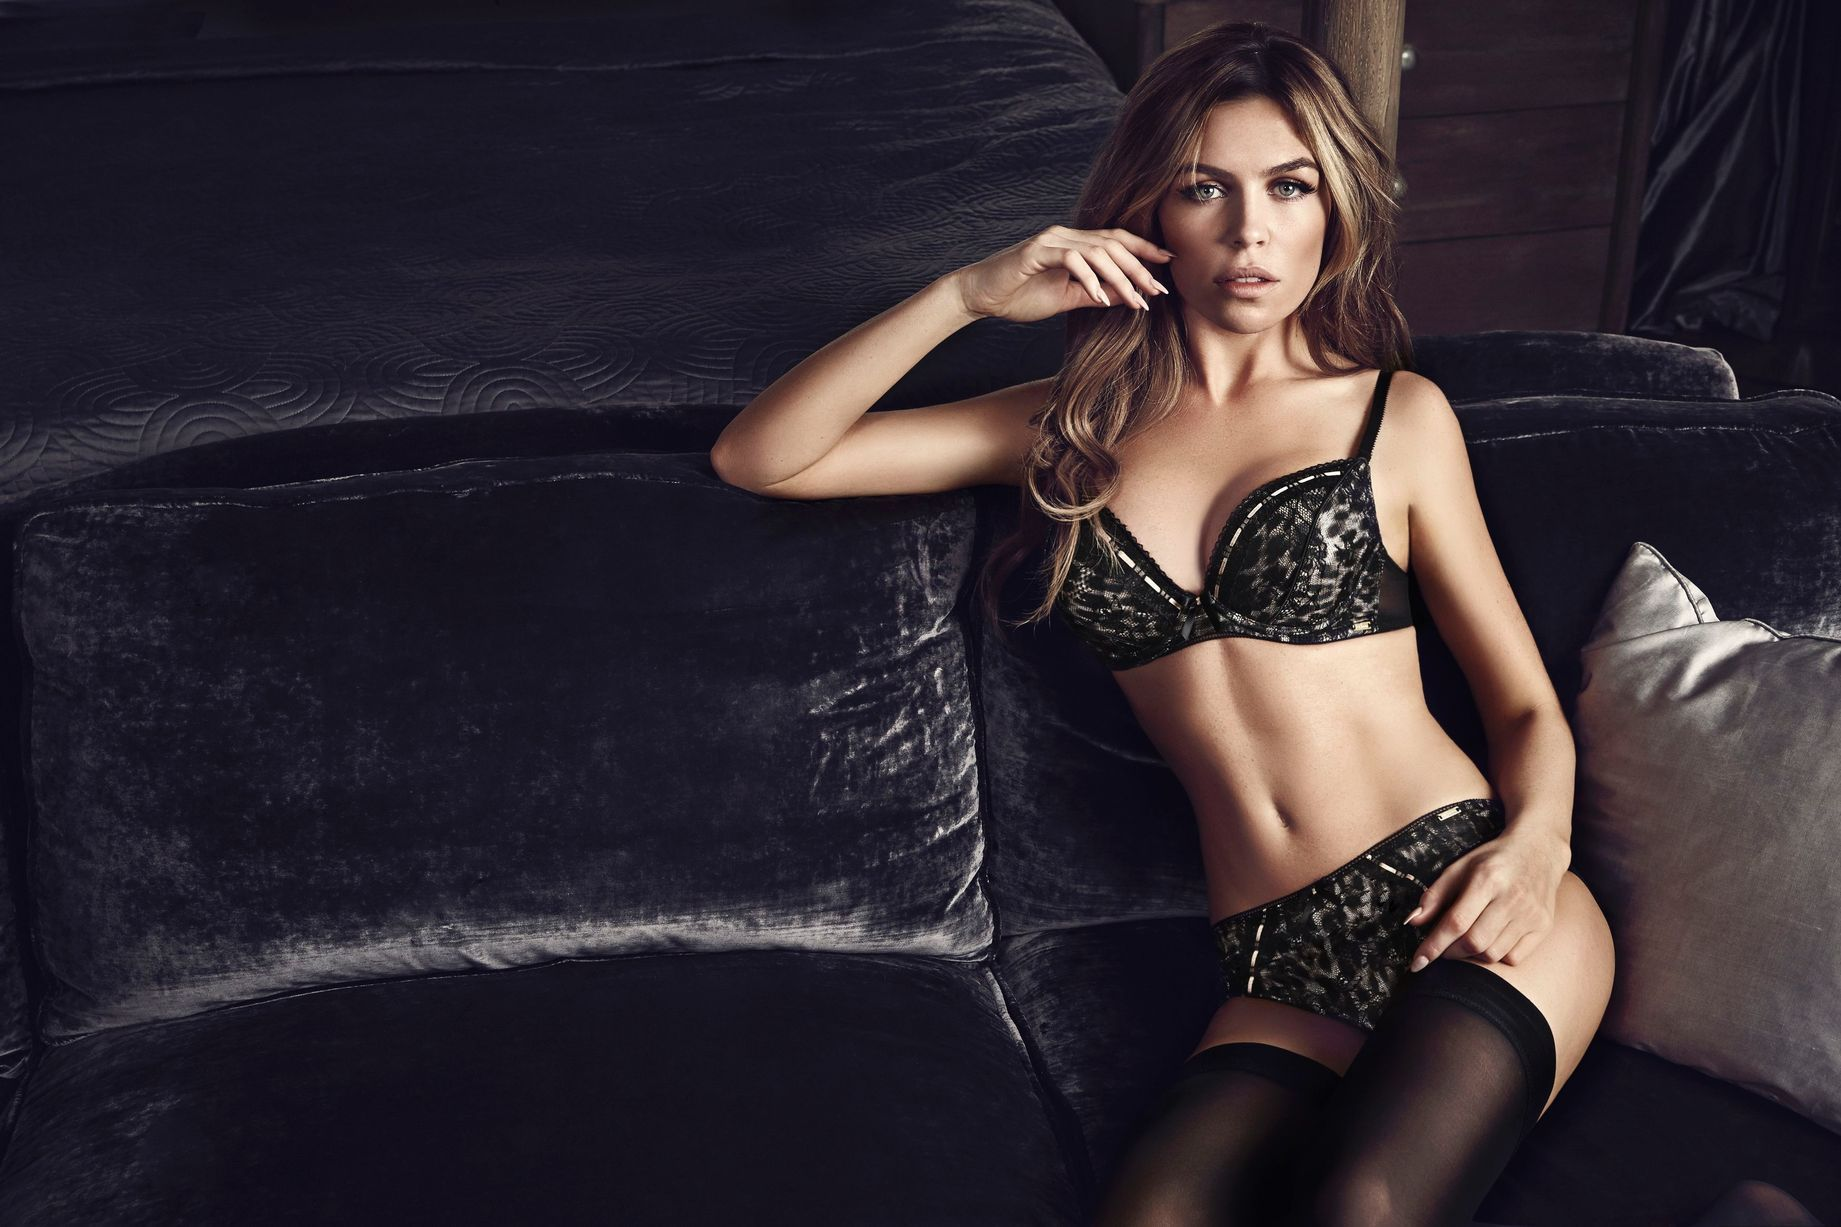 10e5b460ef In pictures  Abbey Clancy looks stunning in new Ultimo lingerie shoot -  Daily Record